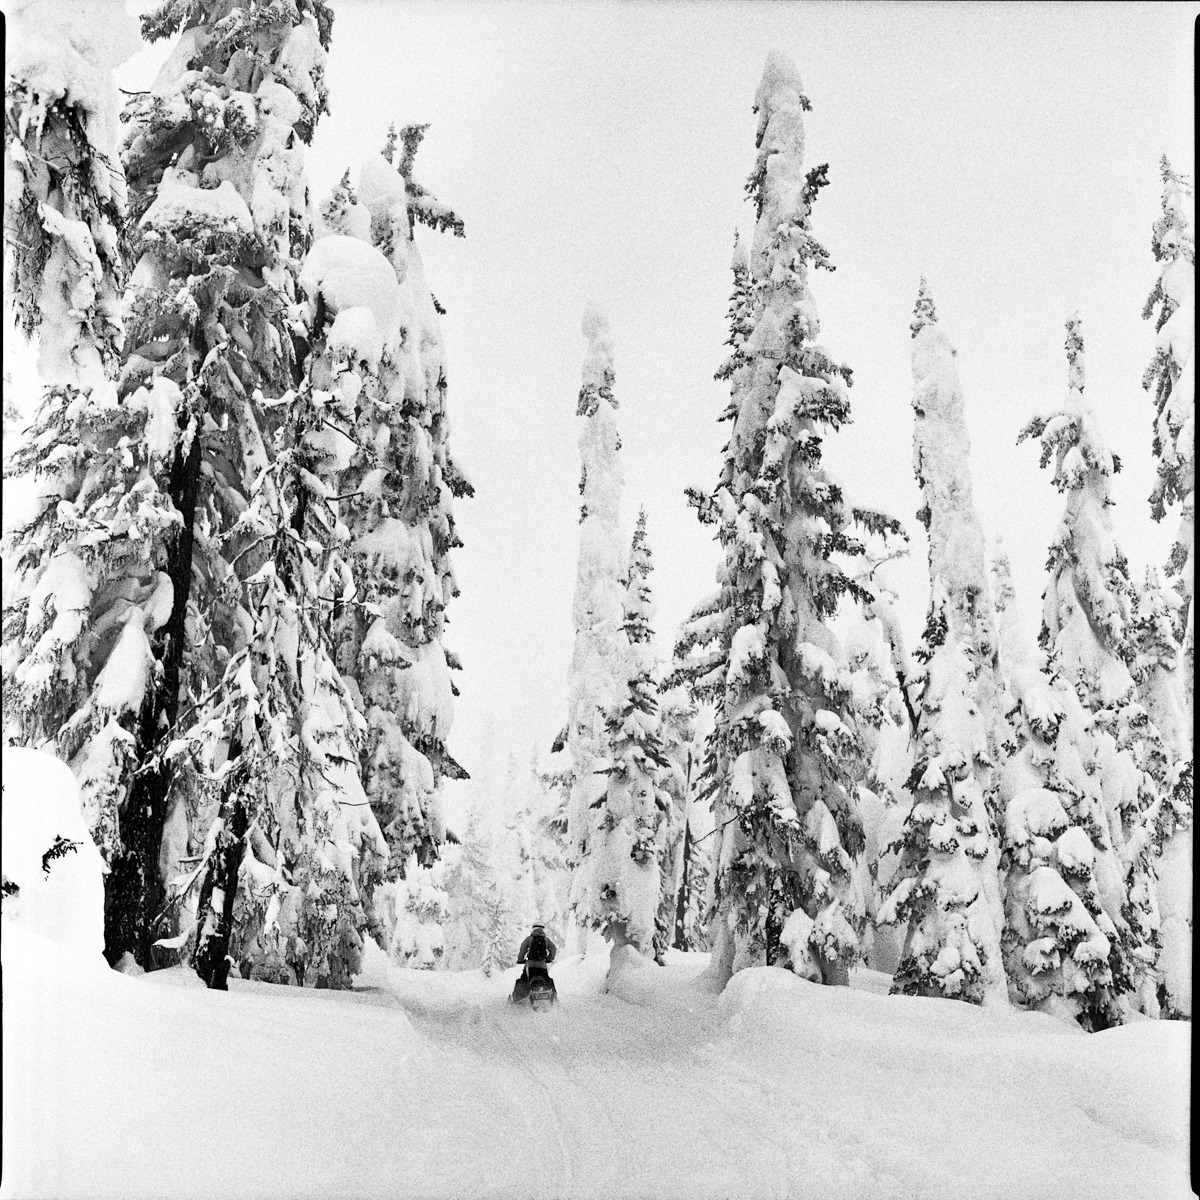 The best part about sledding- EXPLORATION of NEW ZONES  Eric Jackson_Revelstoke, BC_  Photo:  NOMADDA